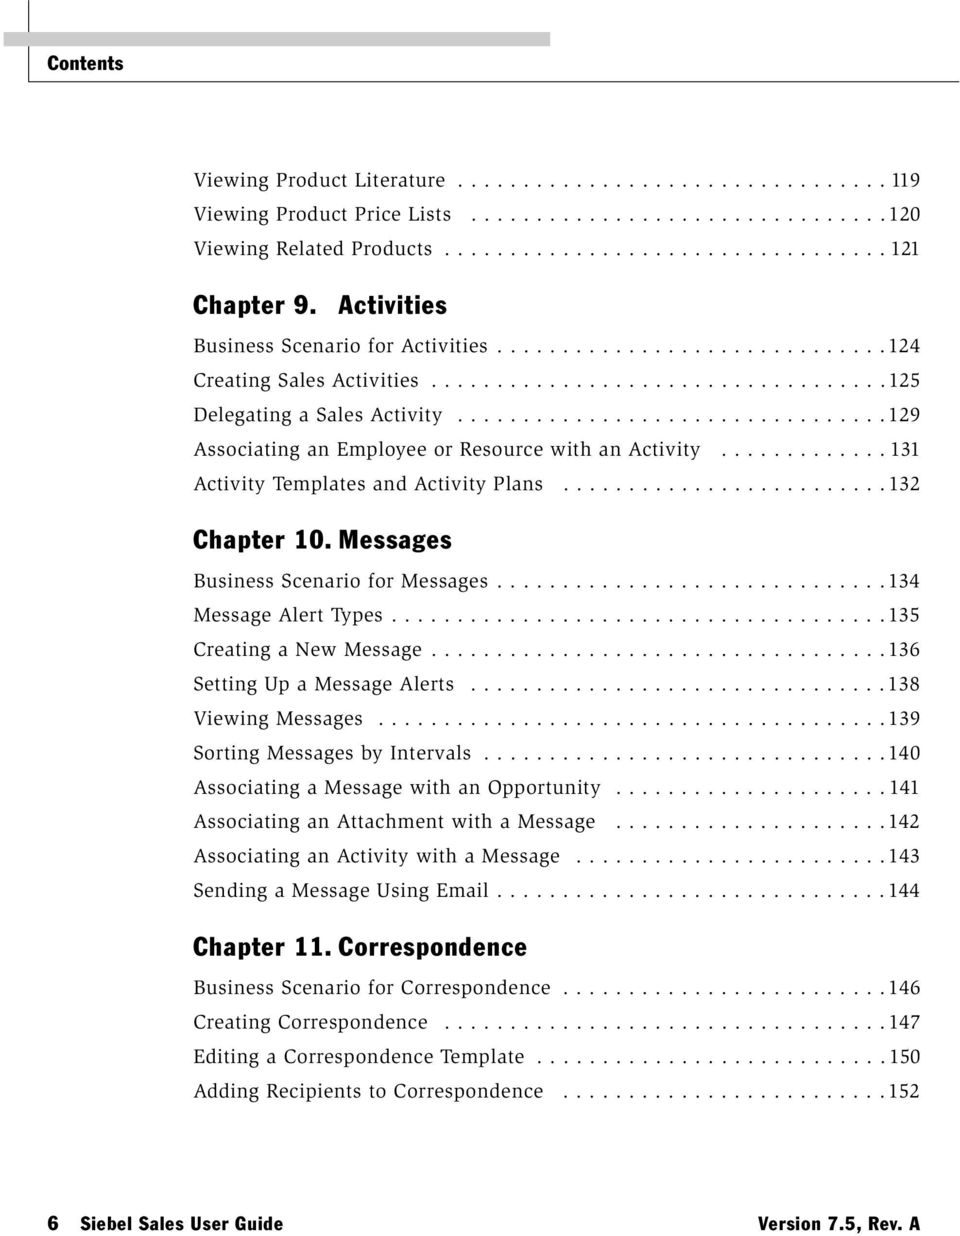 ................................129 Associating an Employee or Resource with an Activity............. 131 Activity Templates and Activity Plans.........................132 Chapter 10.